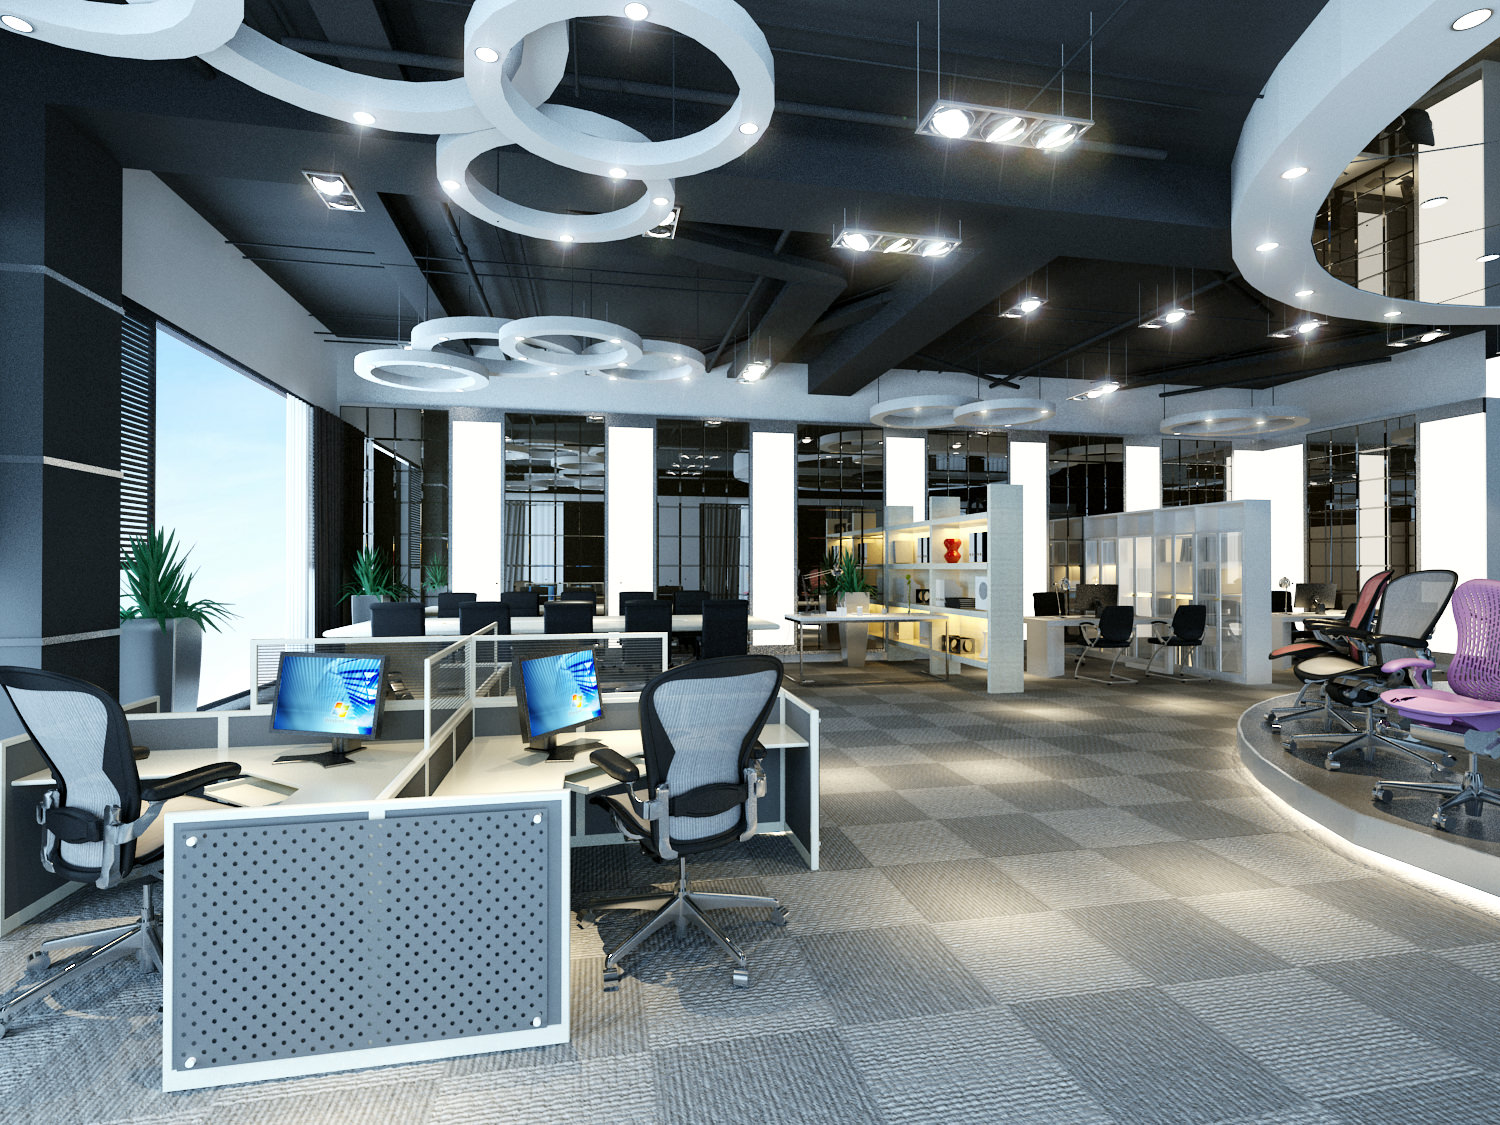 Spacious office with exotic decorations 3d model max for Office design 3d max